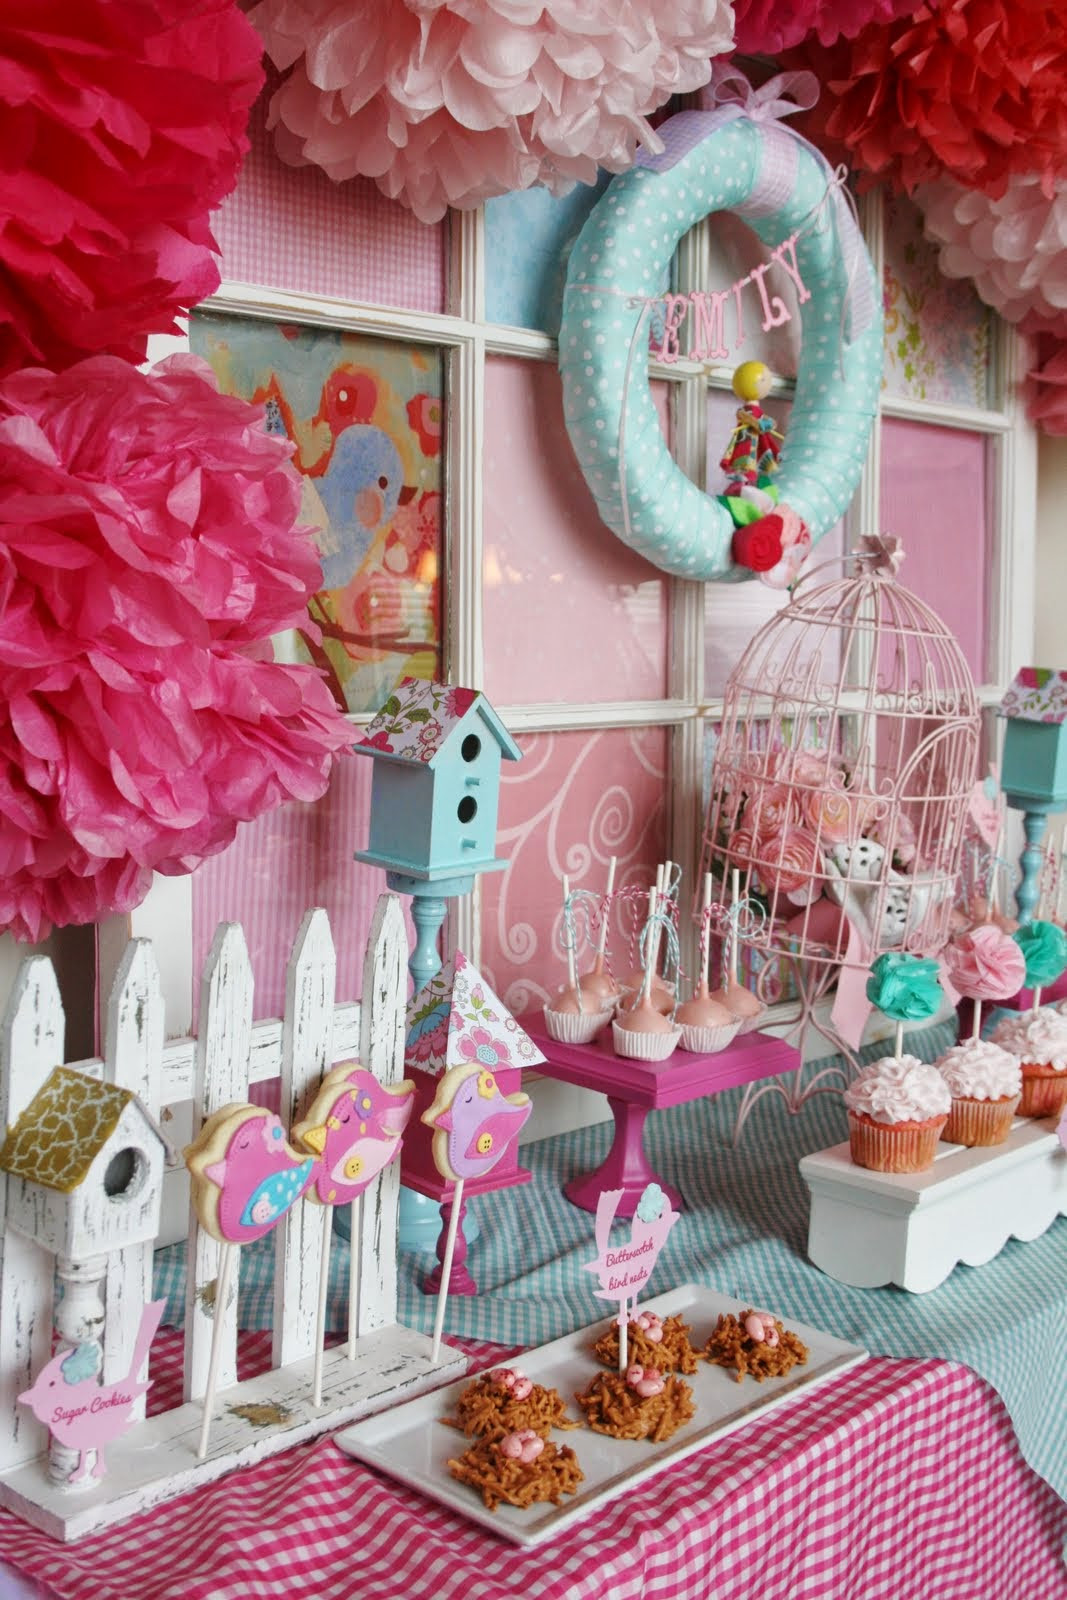 Baby Girl Shower Decorations Ideas  All About Women s Things Baby Shower Decorating Ideas For